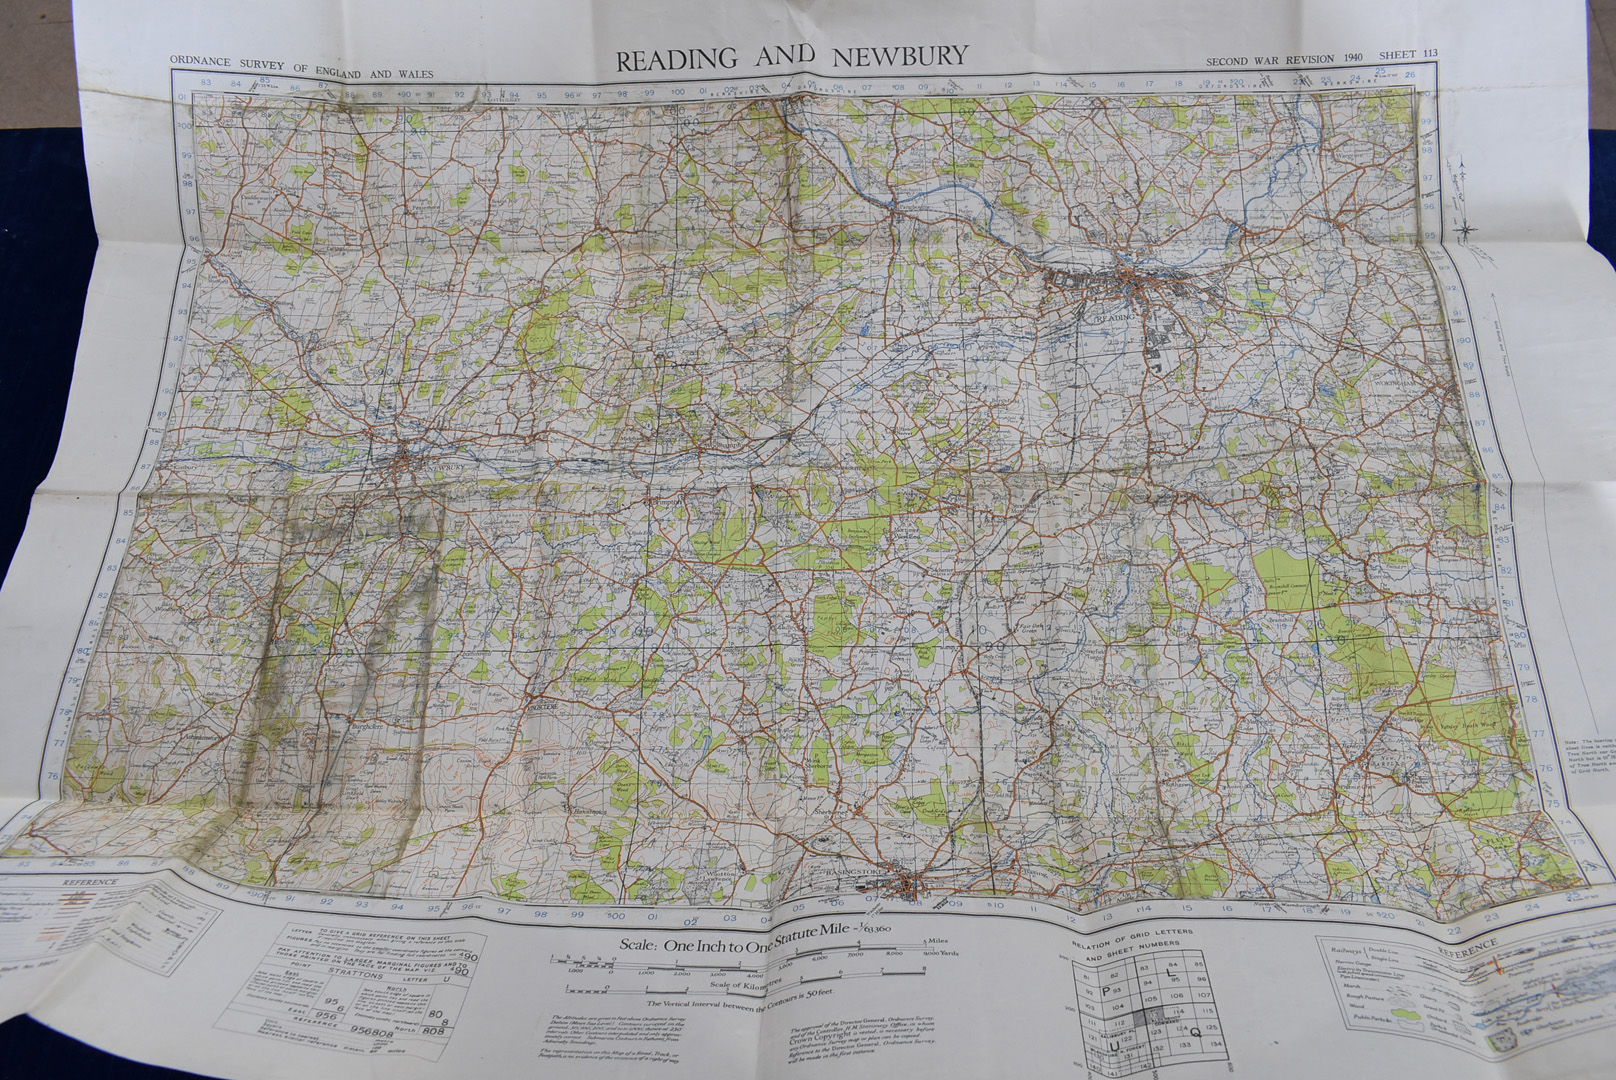 A group of five WWII Ordnance Survey maps, Second War Revision 1940 5th Edition, to include, - Image 3 of 6